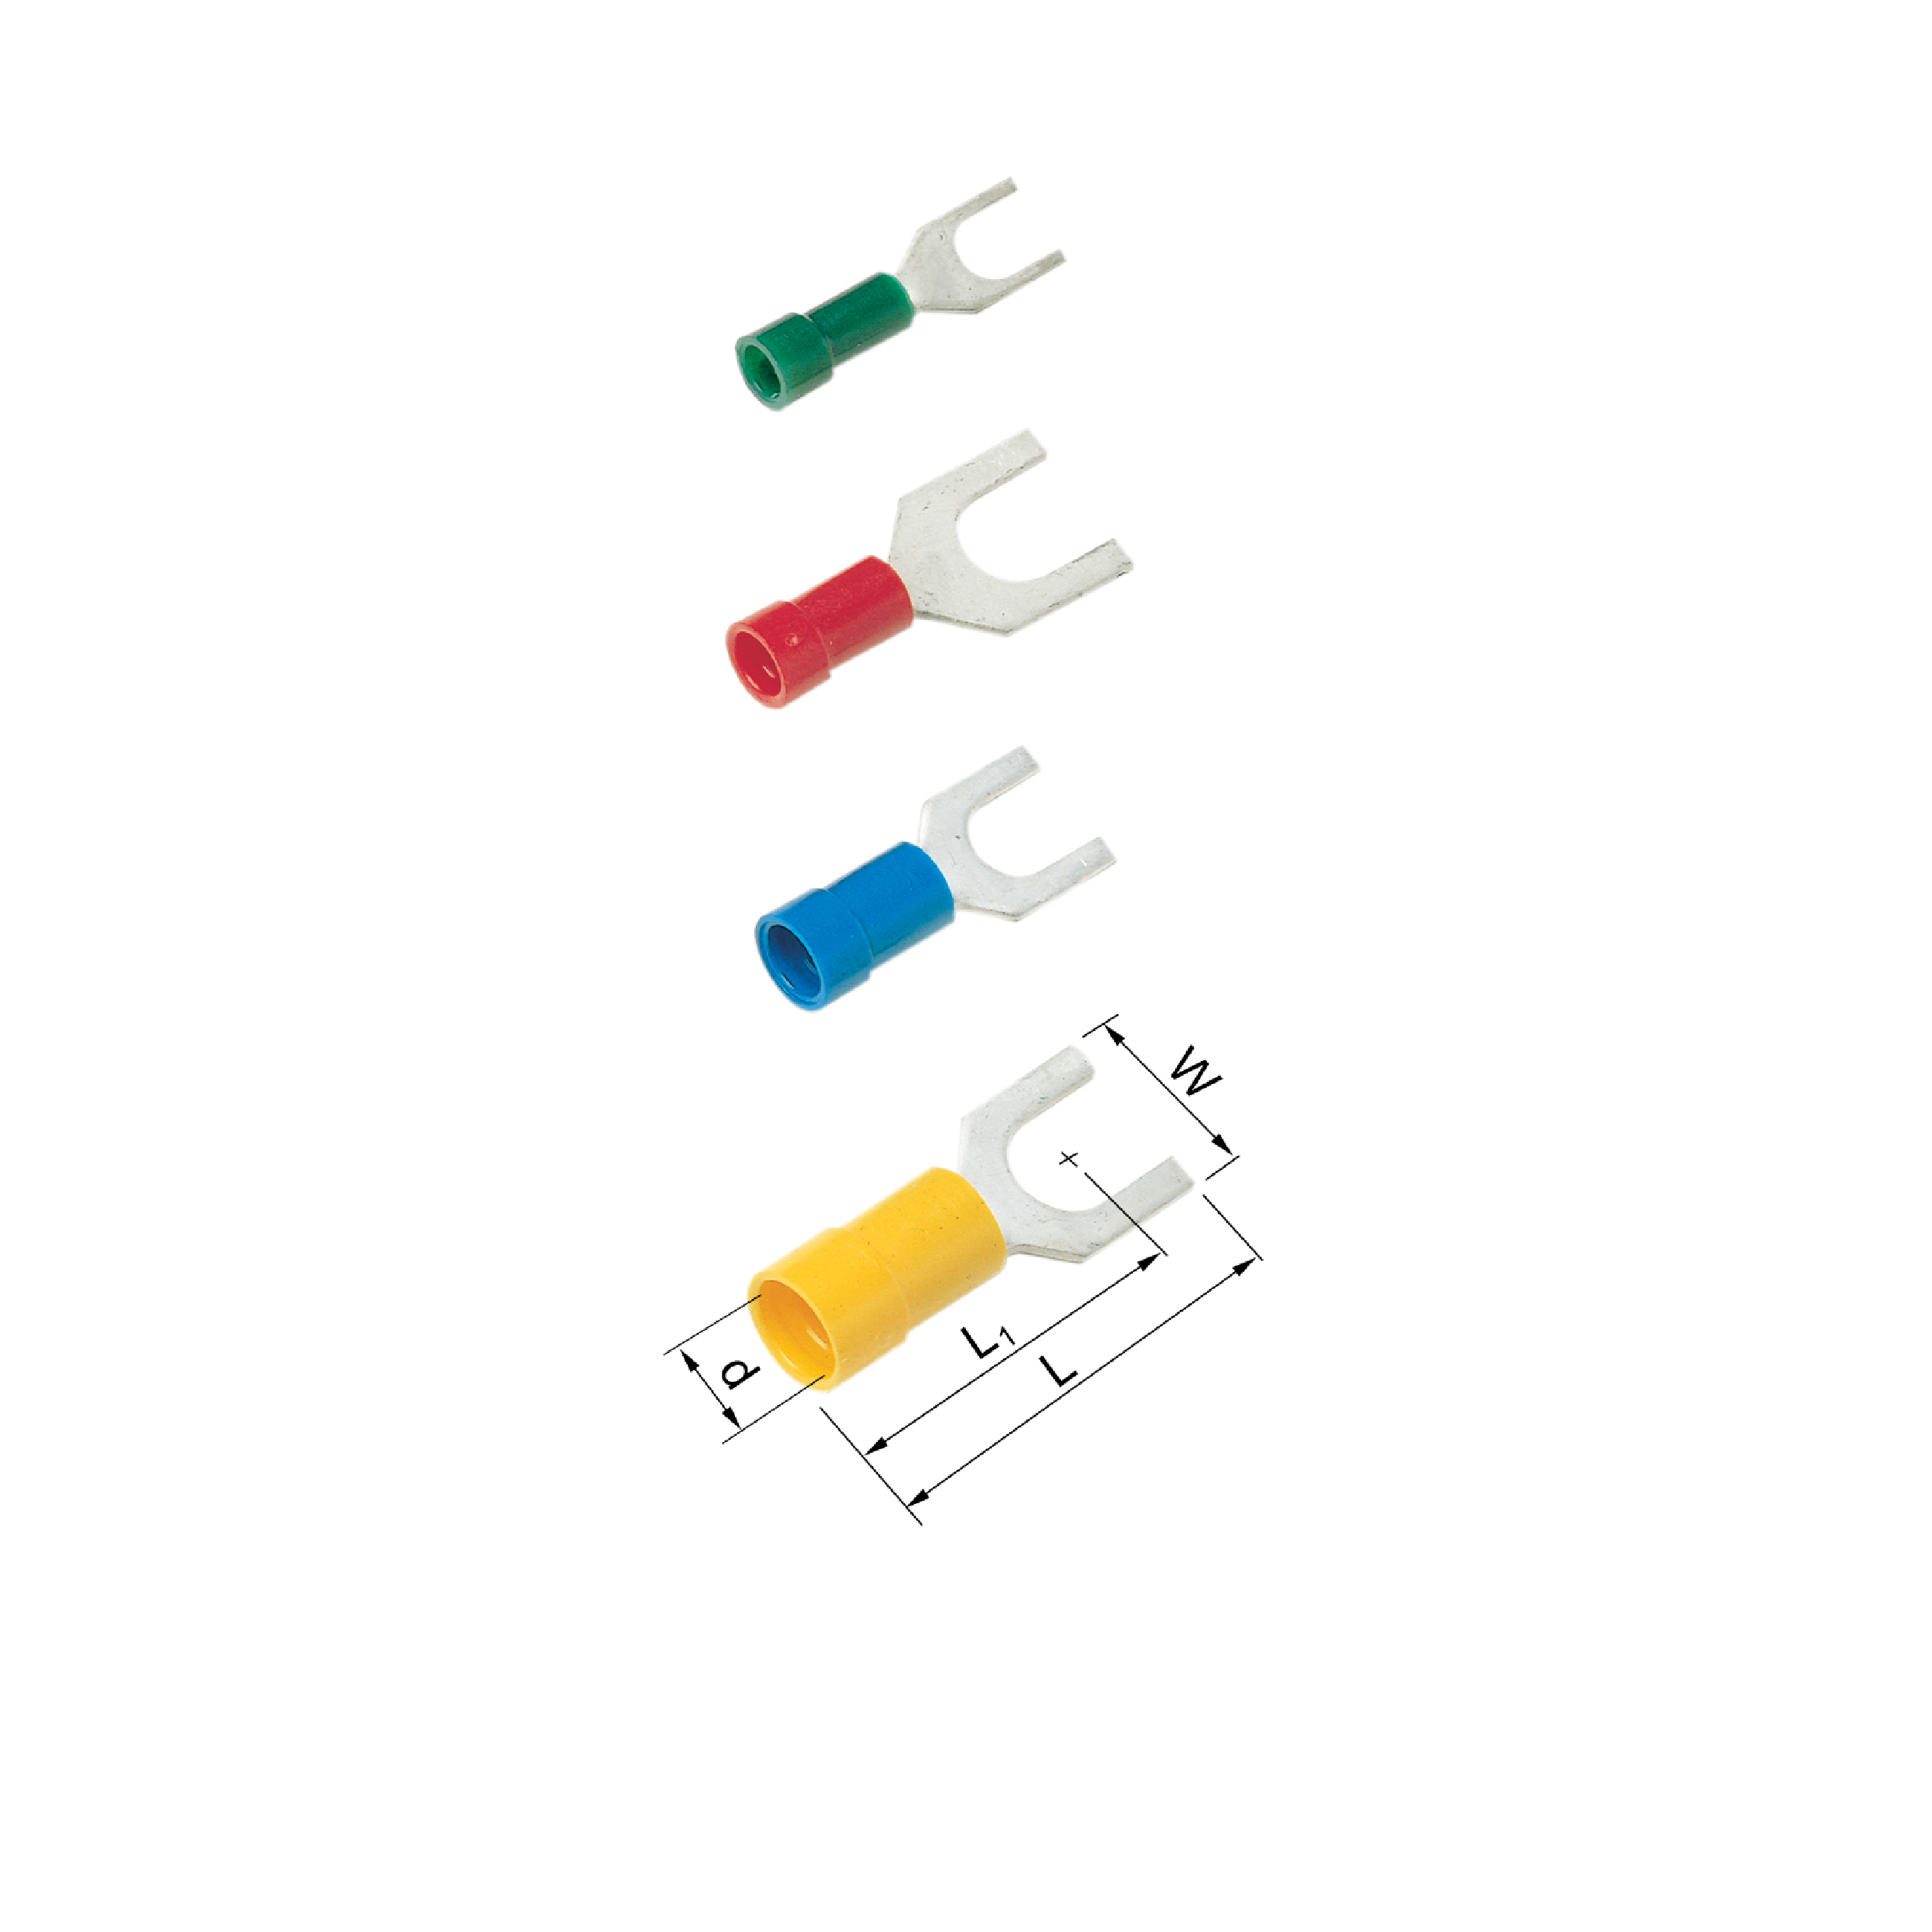 Elpress Pre-Insulated Fork Terminals - Halogen Free (0.1-6mm²) A1537G, A1565G, A2553G, A4665G, A4610G.